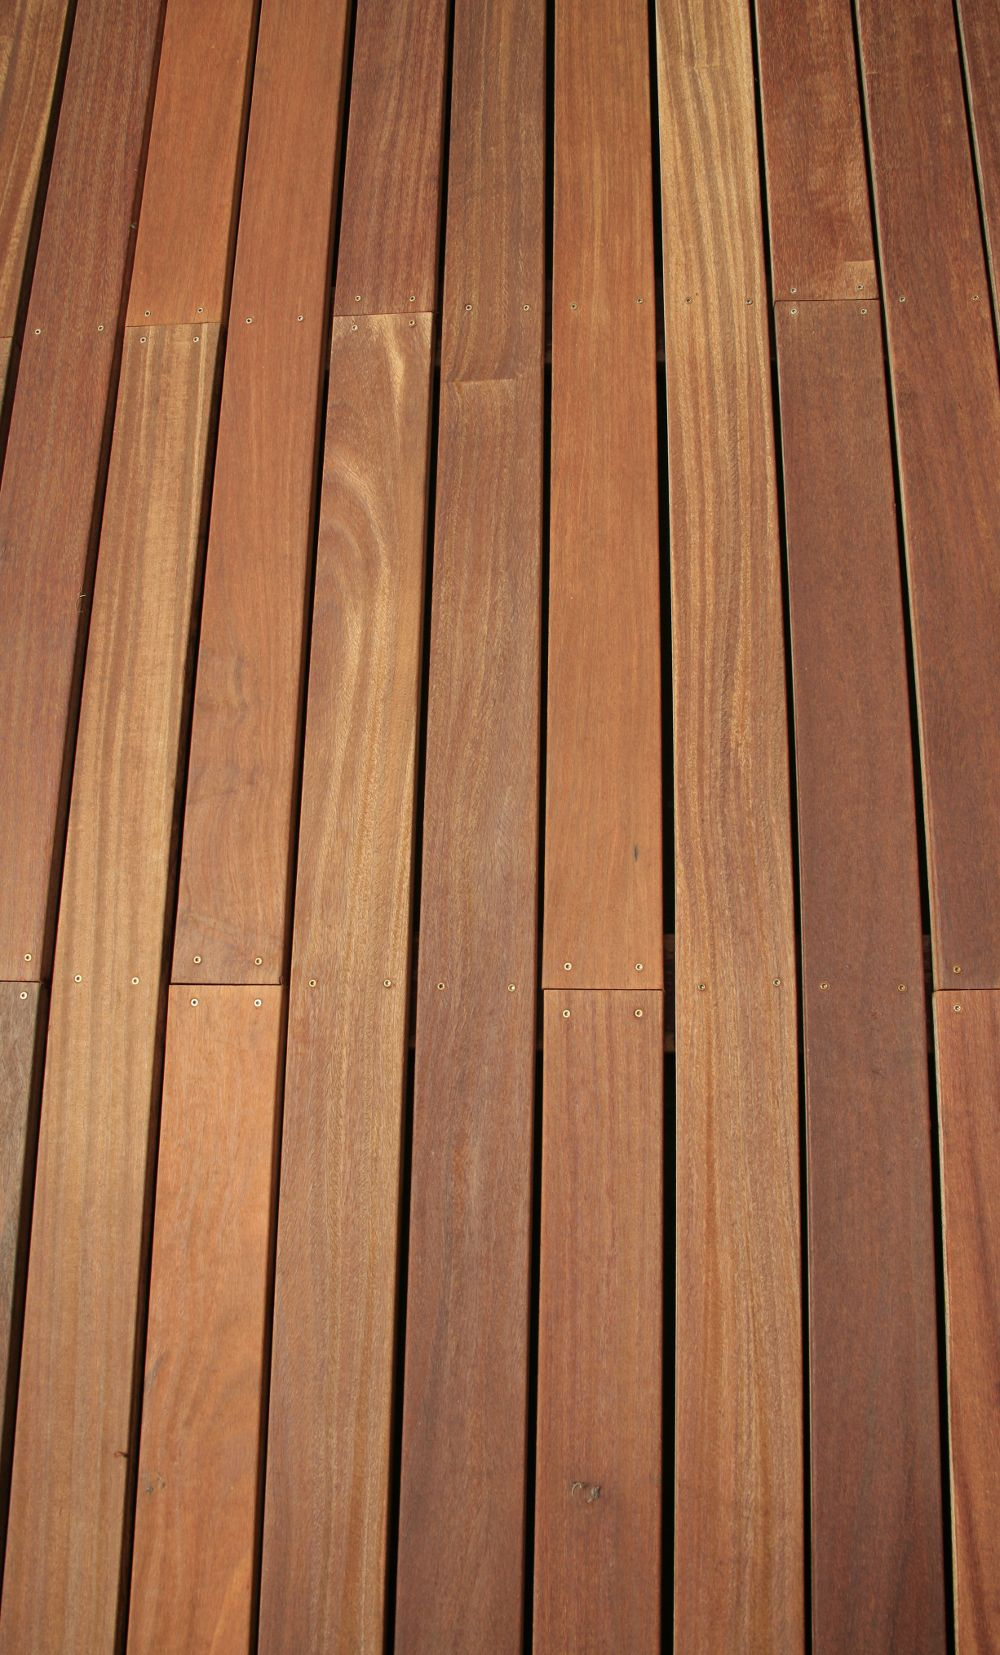 Cumaru Decking Is Amazing And More Affordable Than Ipe Although Ipe Gets All Of The Hype Cumaru Is An Amazingly D Cumaru Decking Hardwood Decking Deck Design